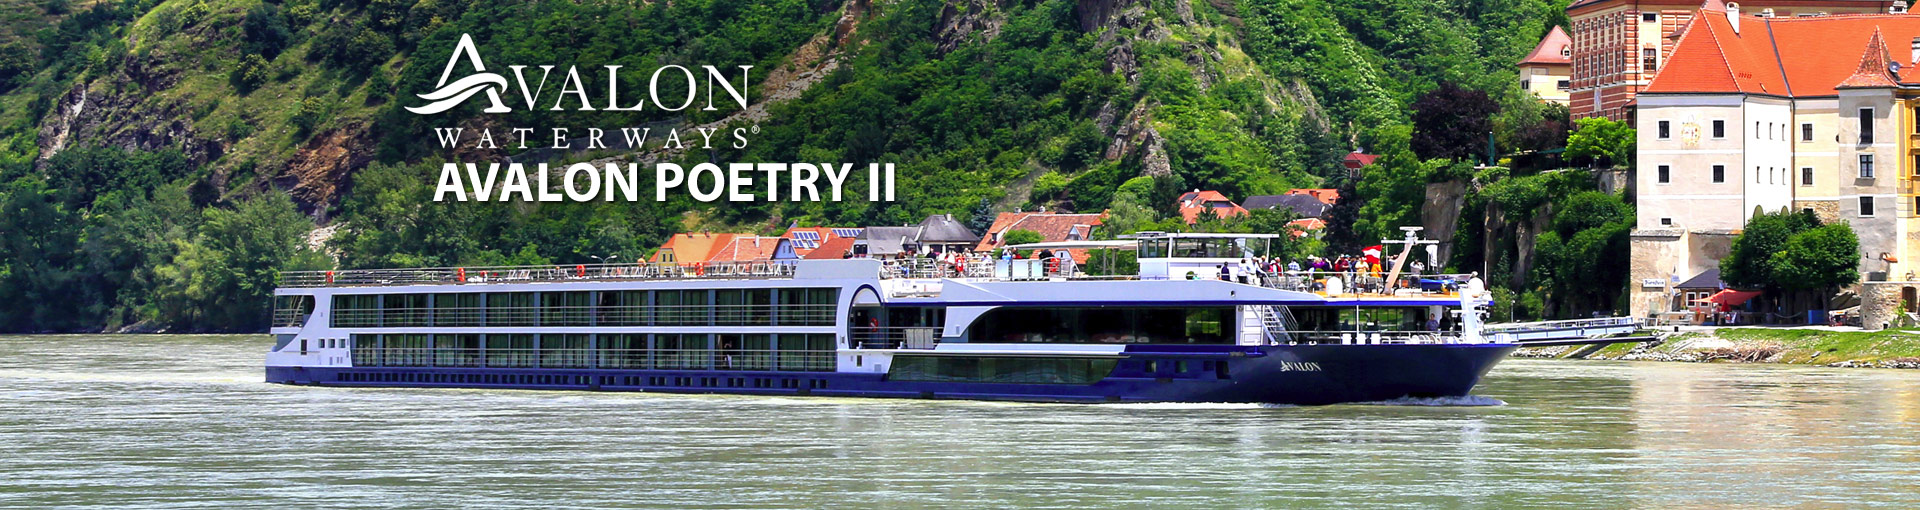 Avalon Waterways Poetry II river cruise ship